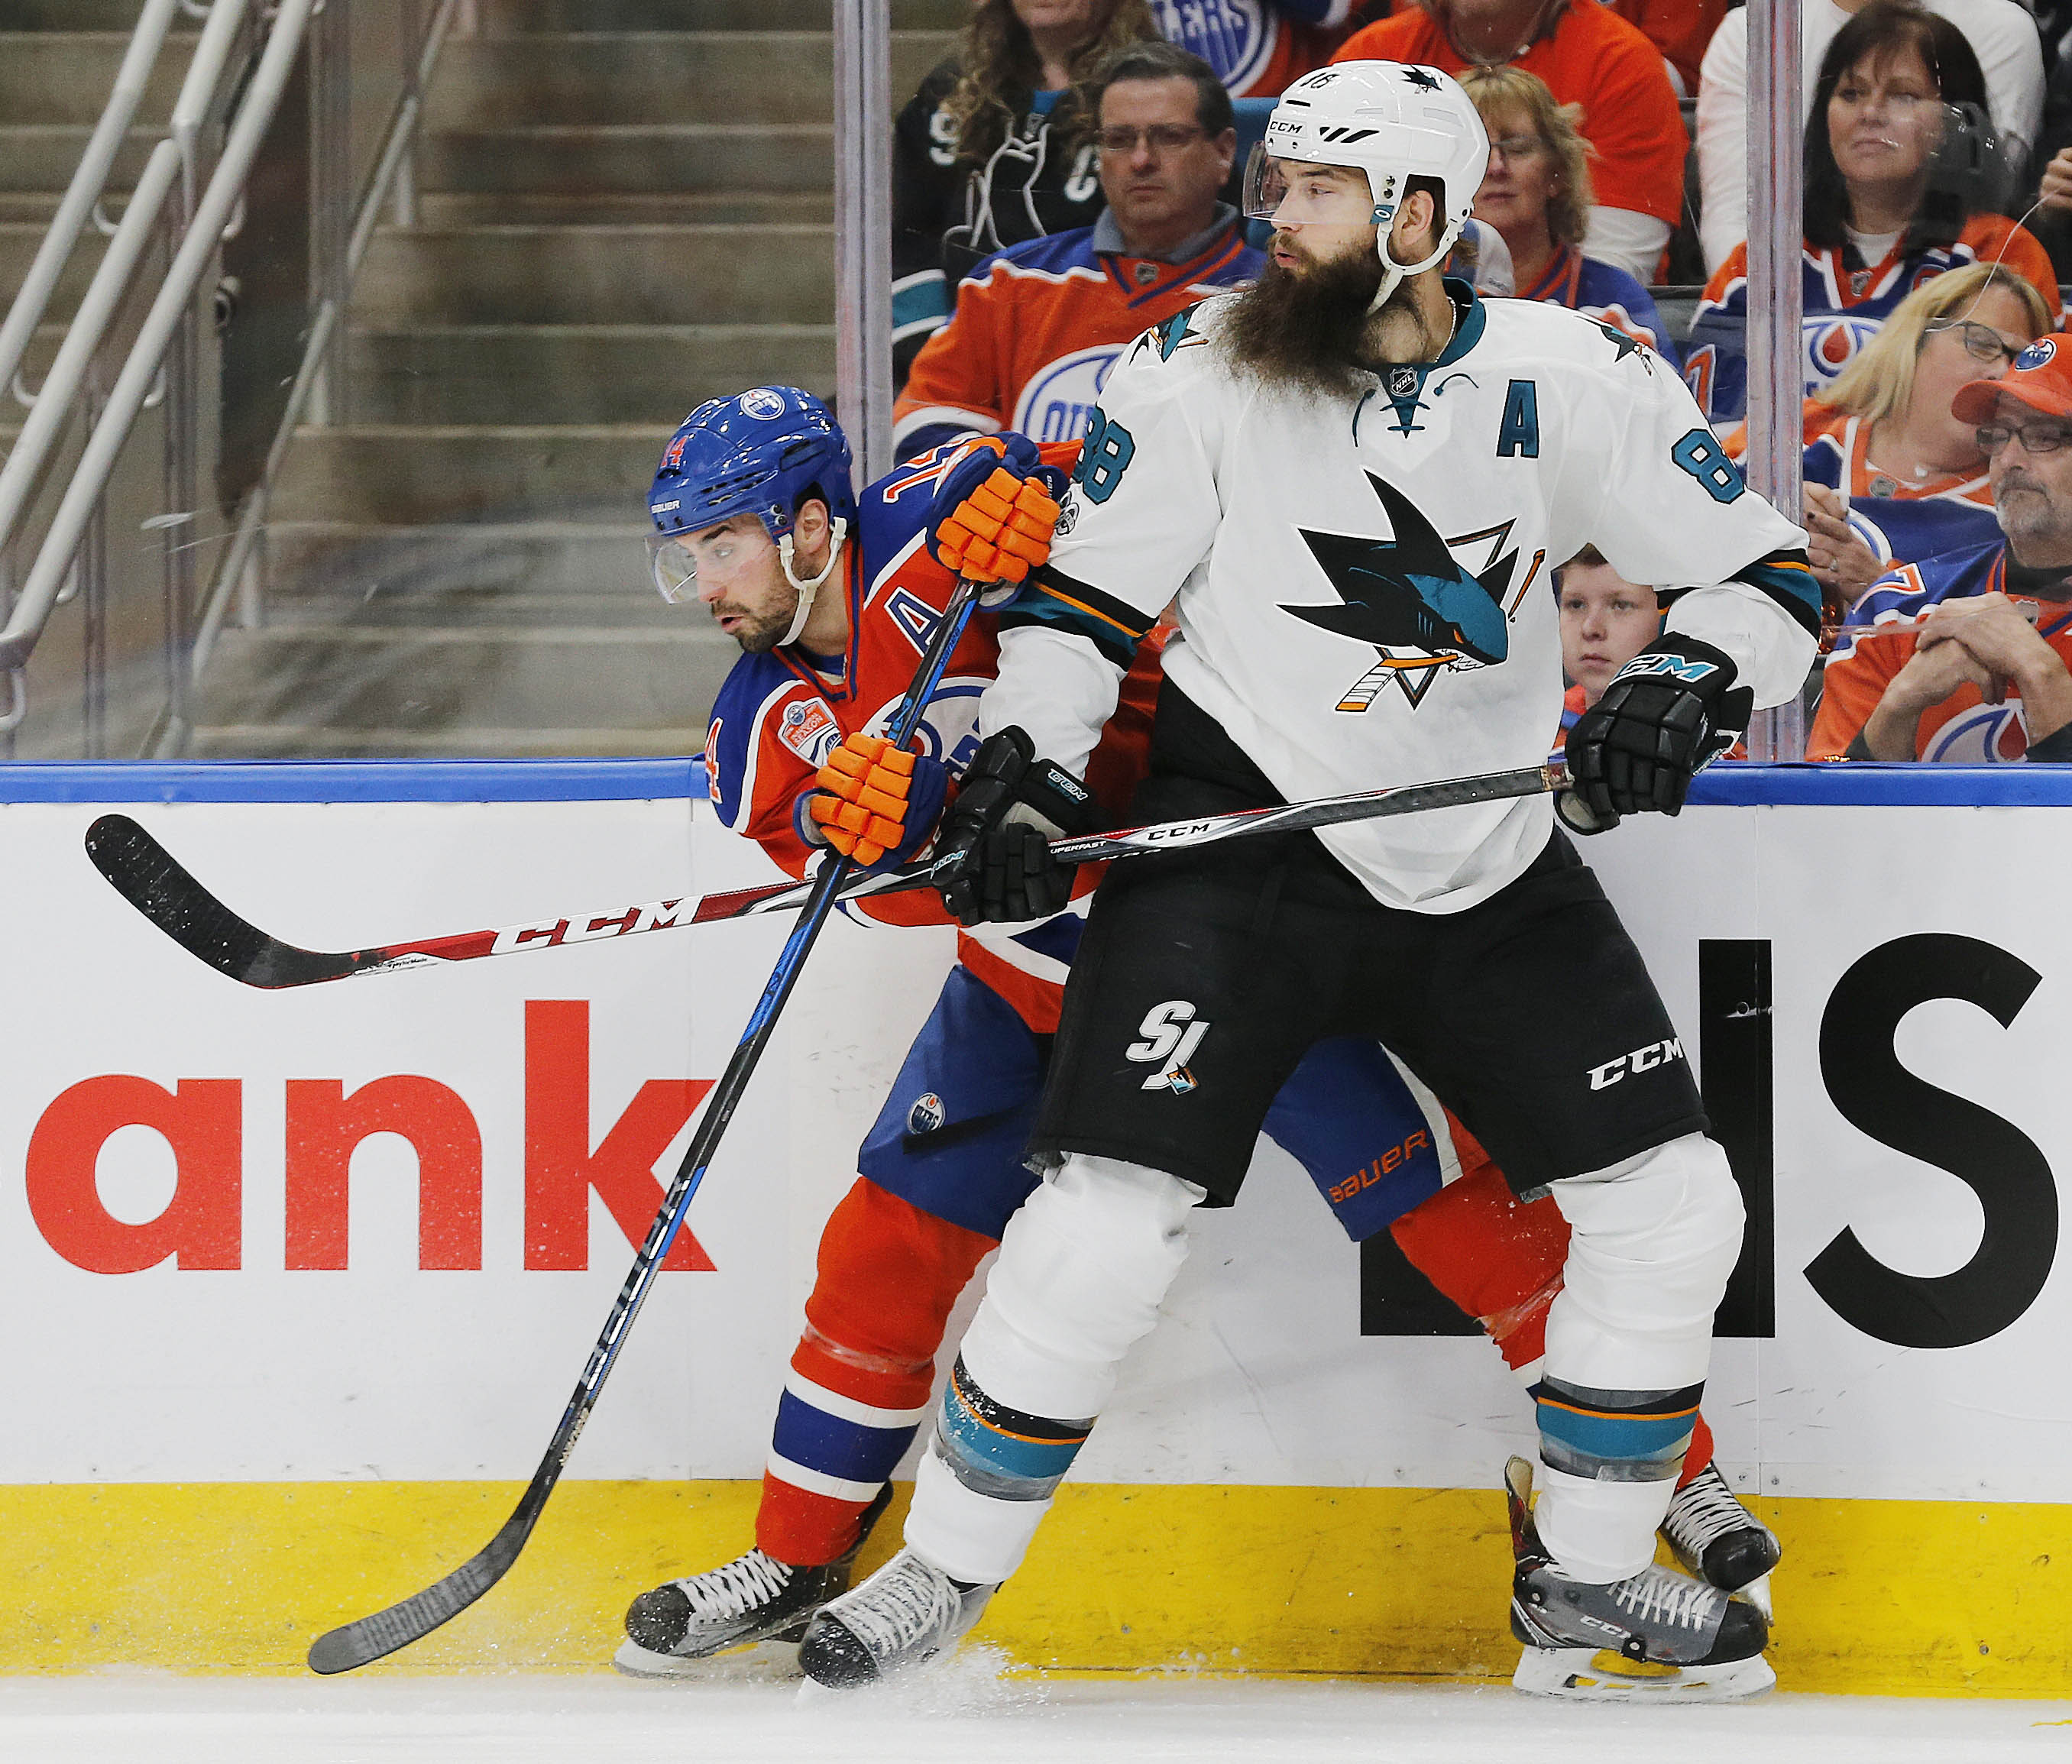 10009447-nhl-stanley-cup-playoffs-san-jose-sharks-at-edmonton-oilers